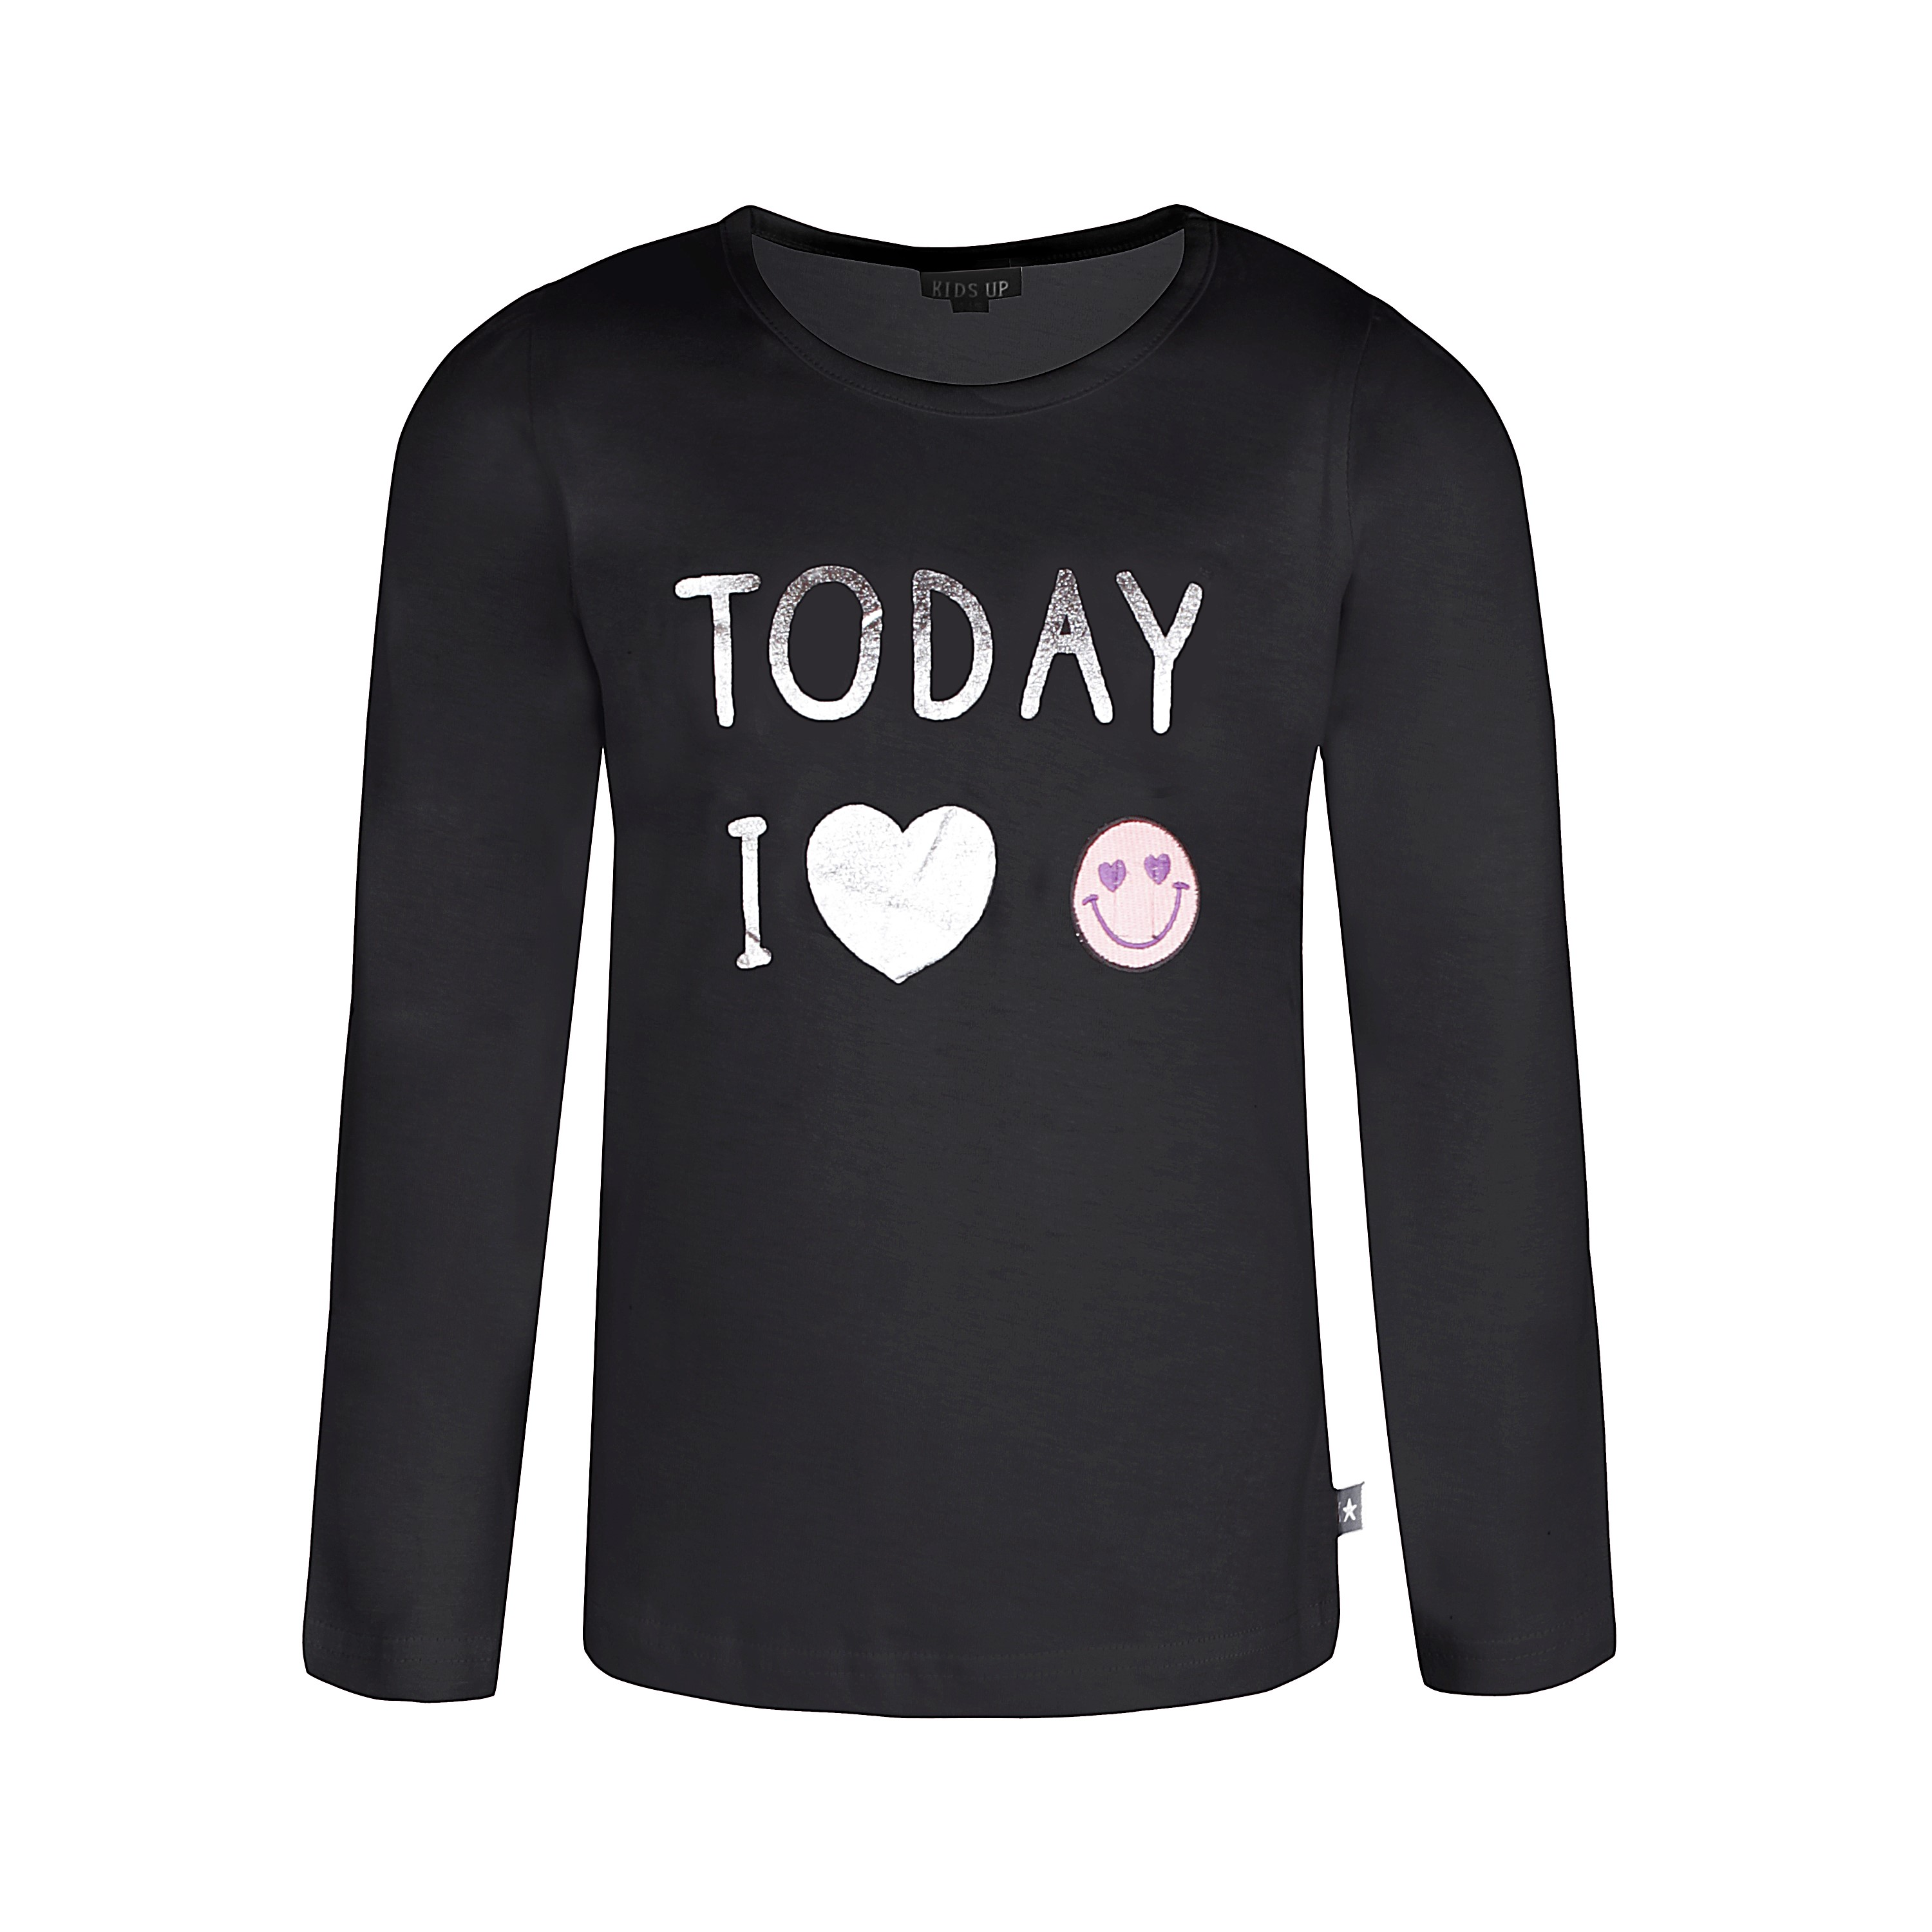 KIDS-UP | T-SHIRT, TODAY I ♥